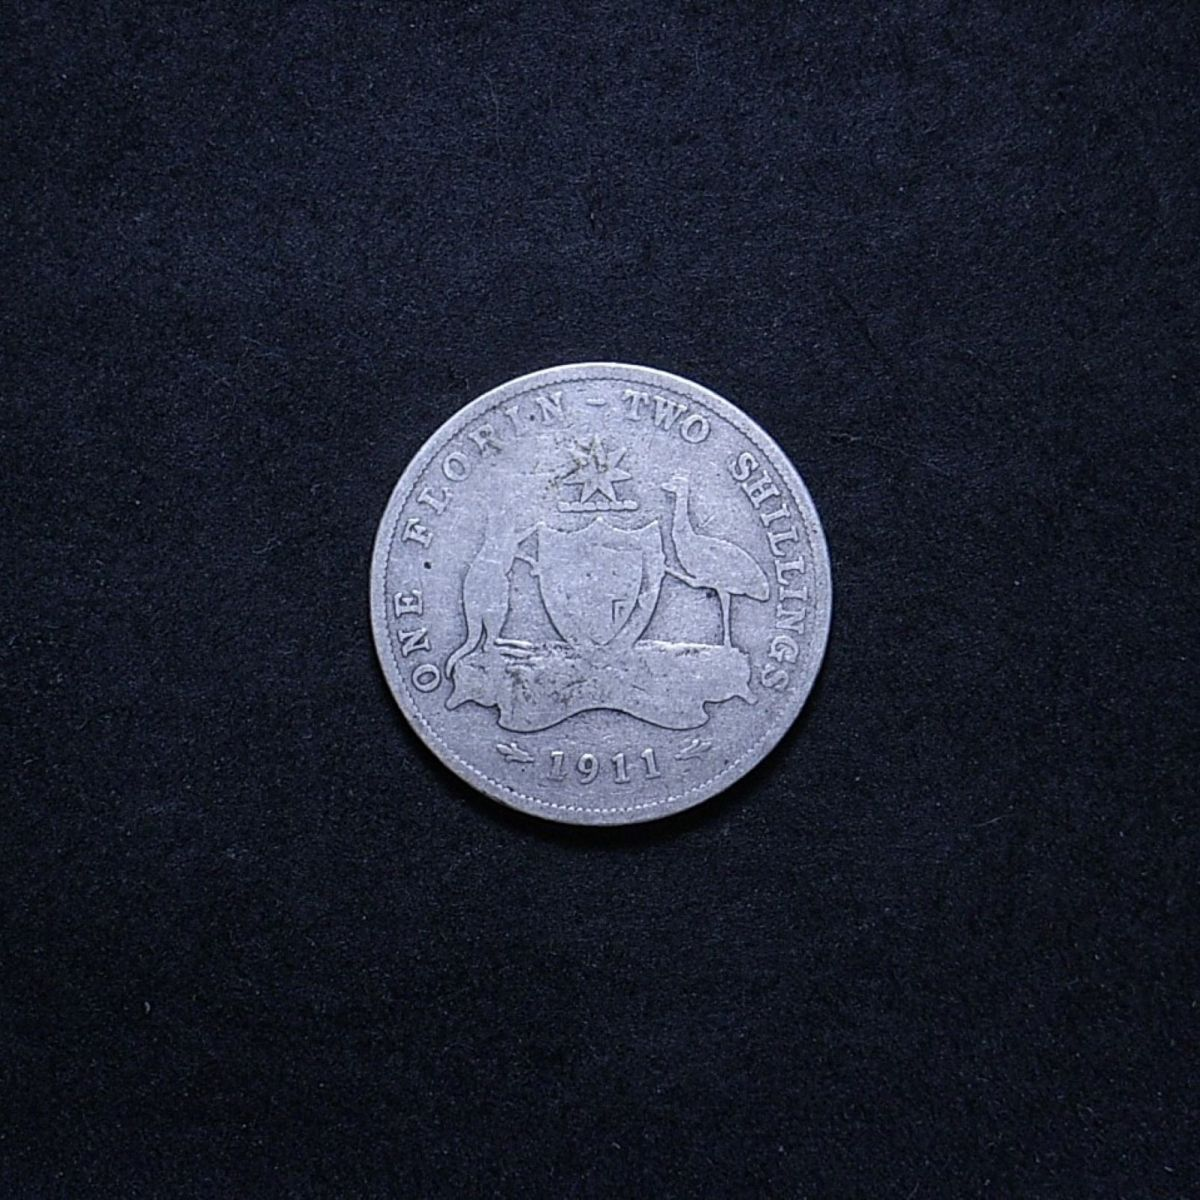 Aus Florin 1911 reverse showing overall appearance